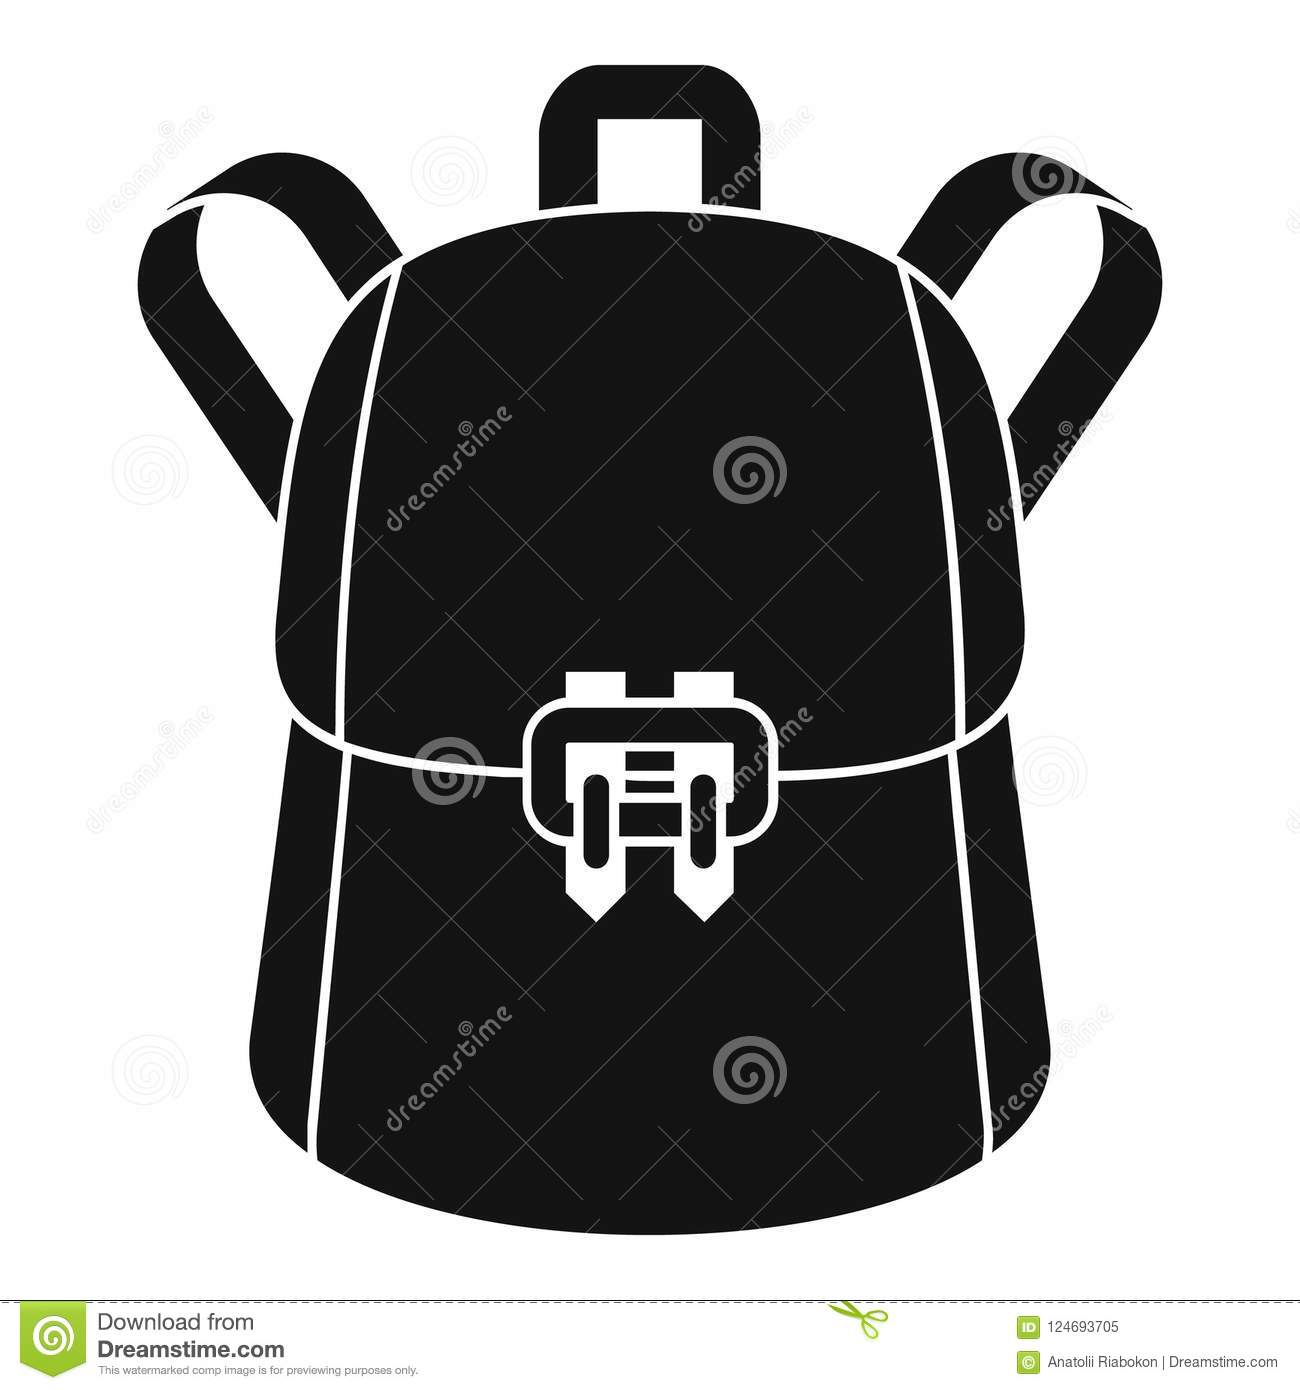 37337e181 Trendy backpack icon. Simple illustration of trendy backpack icon for web  design isolated on white background